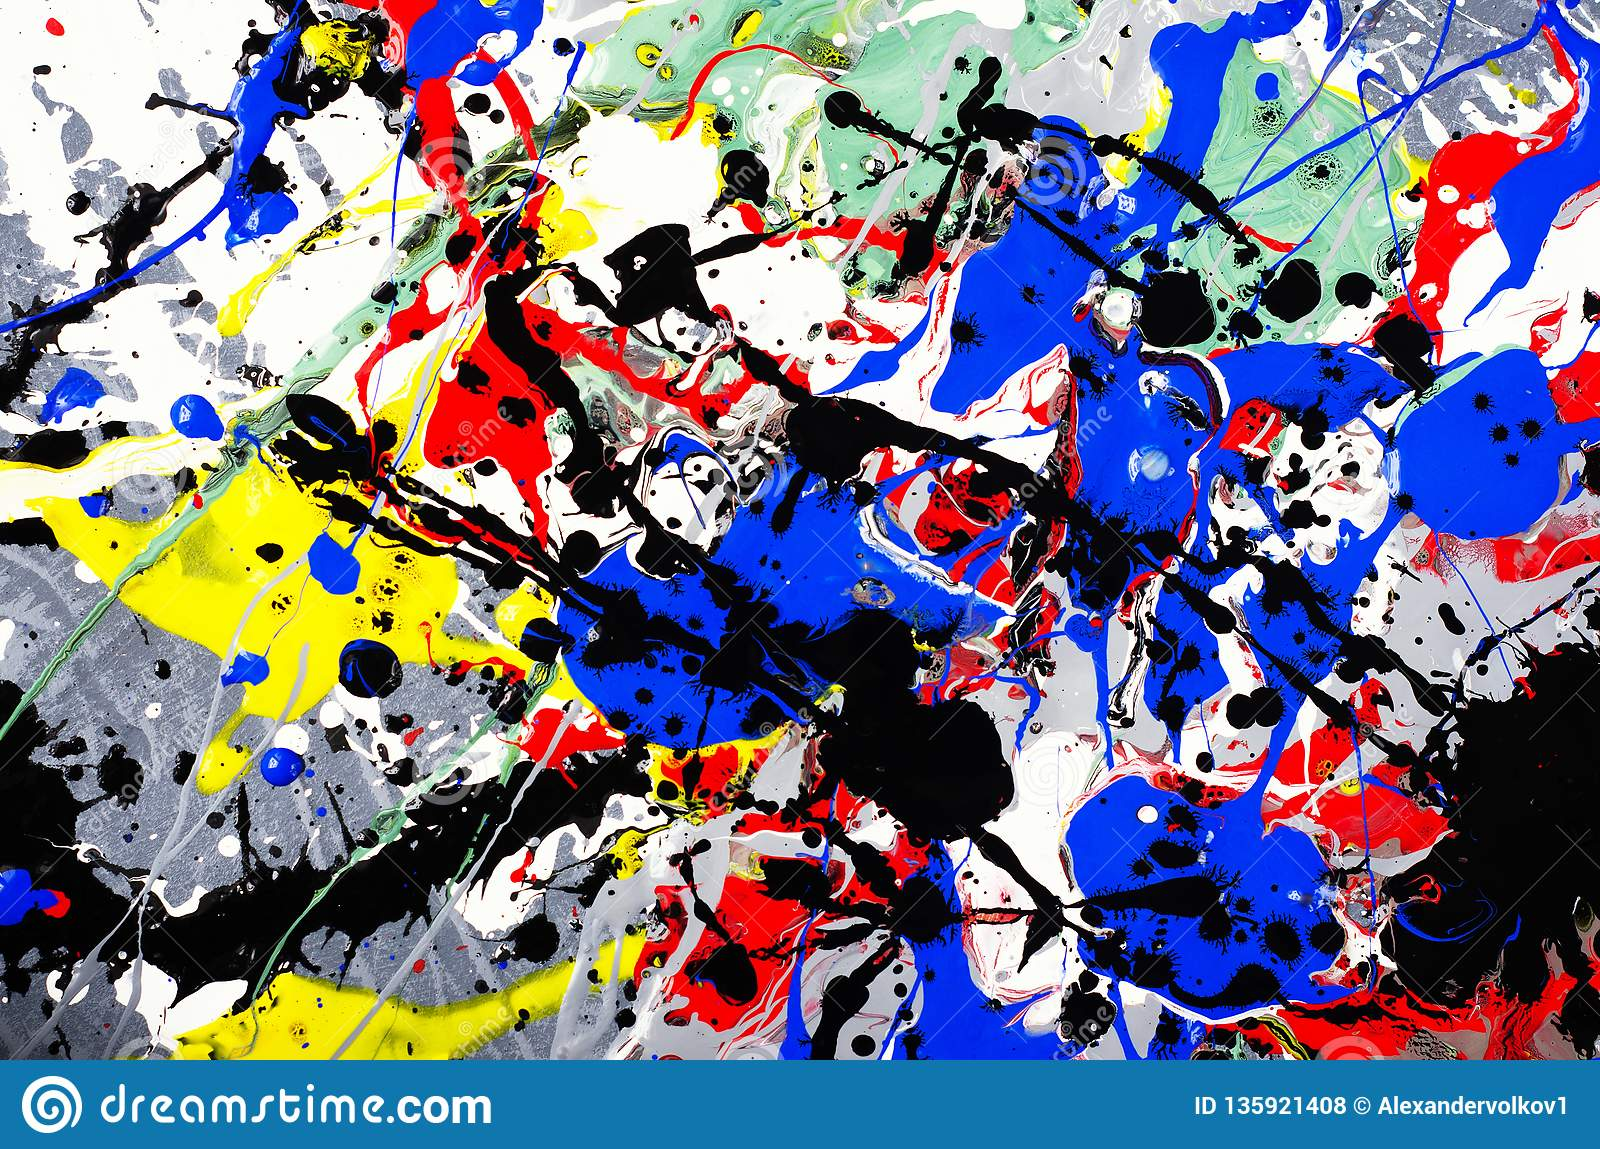 Fun beautiful composition artwork design of colorful abstract art expression with fun brush stroke and point watercolor ink